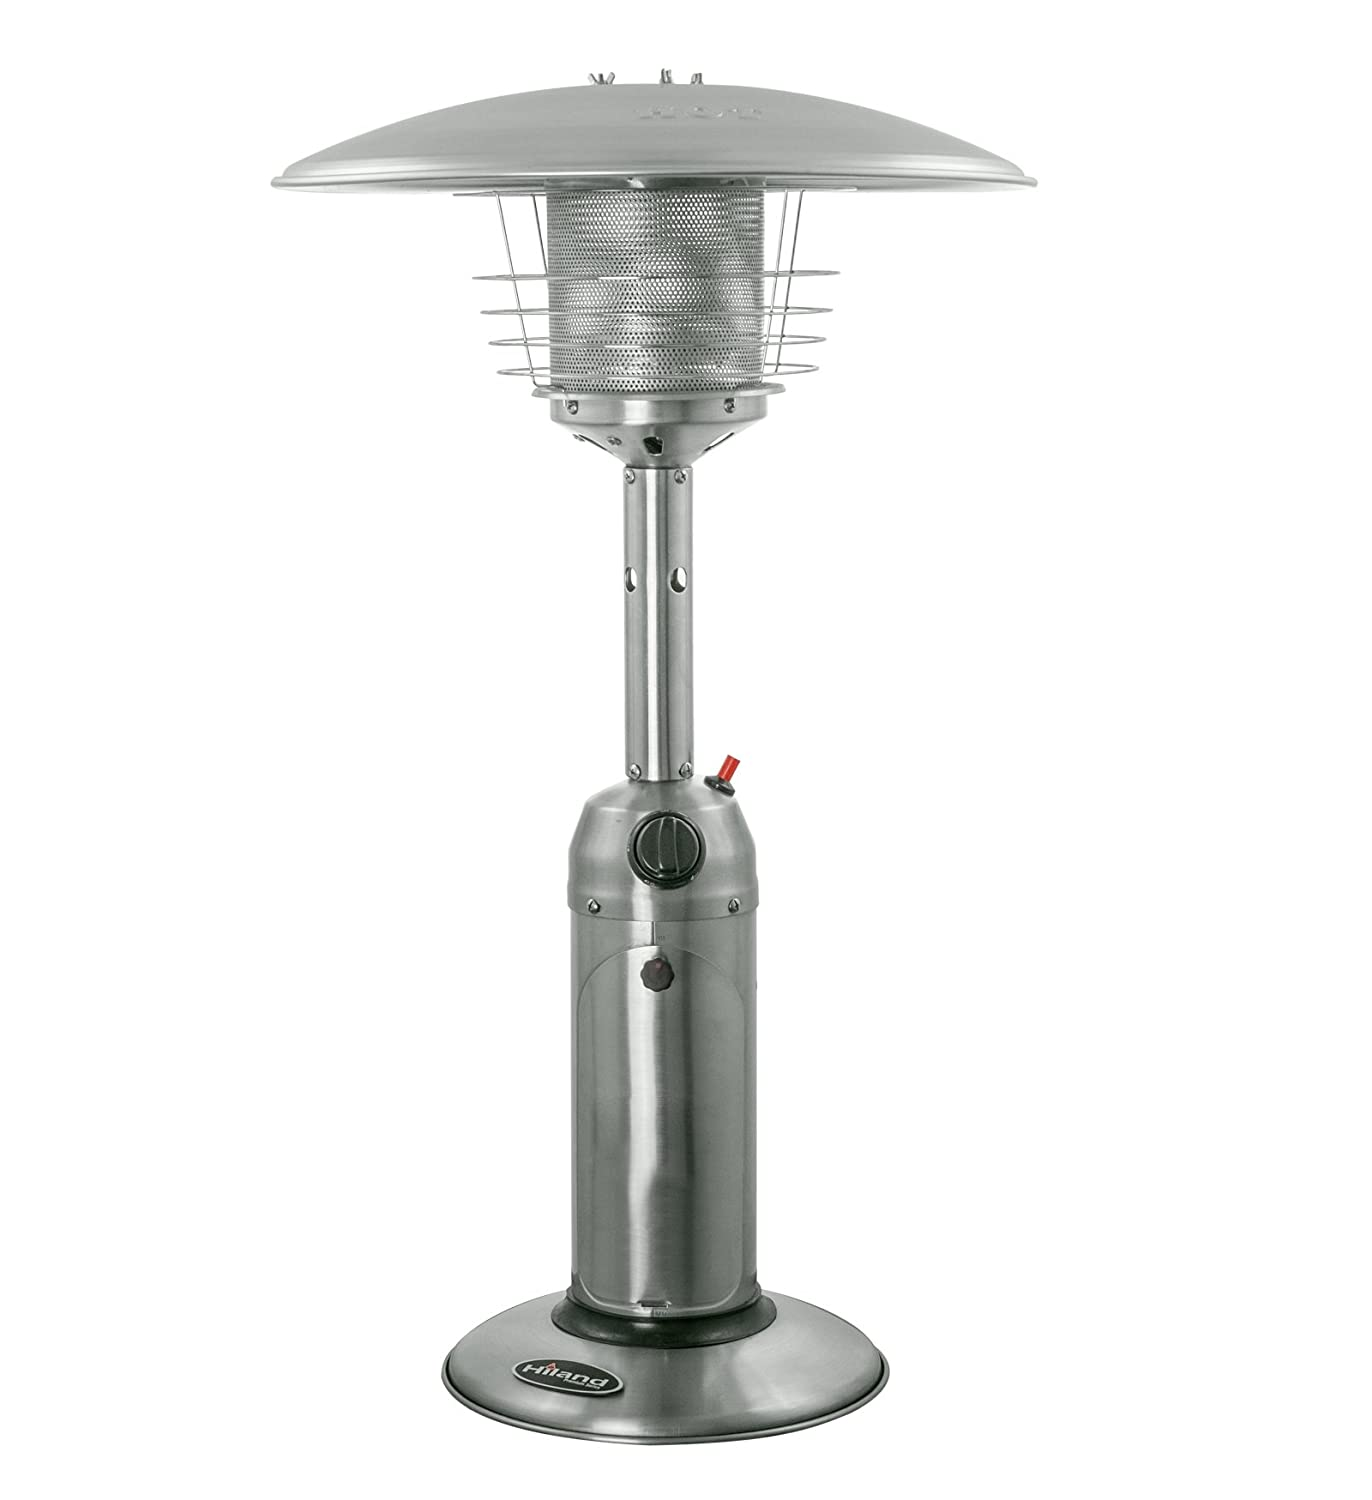 Hiland HLDS032-B Portable Table Top Patio Heater